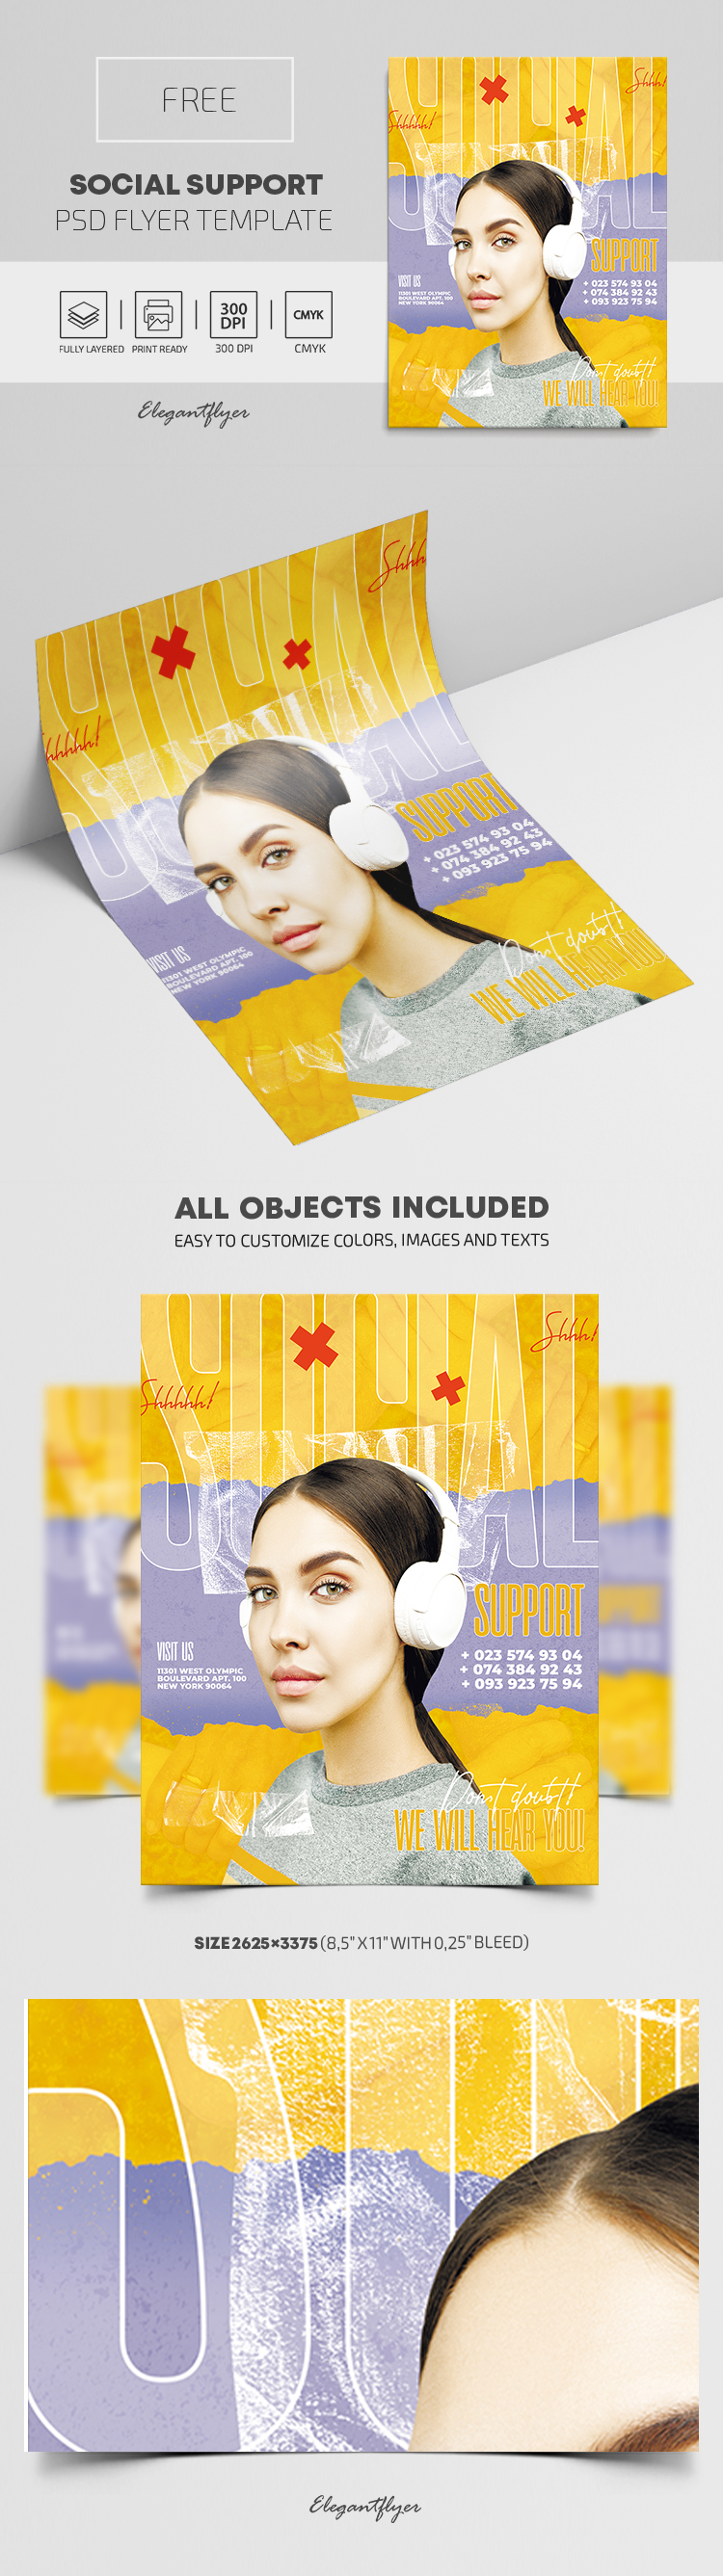 Social Support – Free Flyer PSD Template